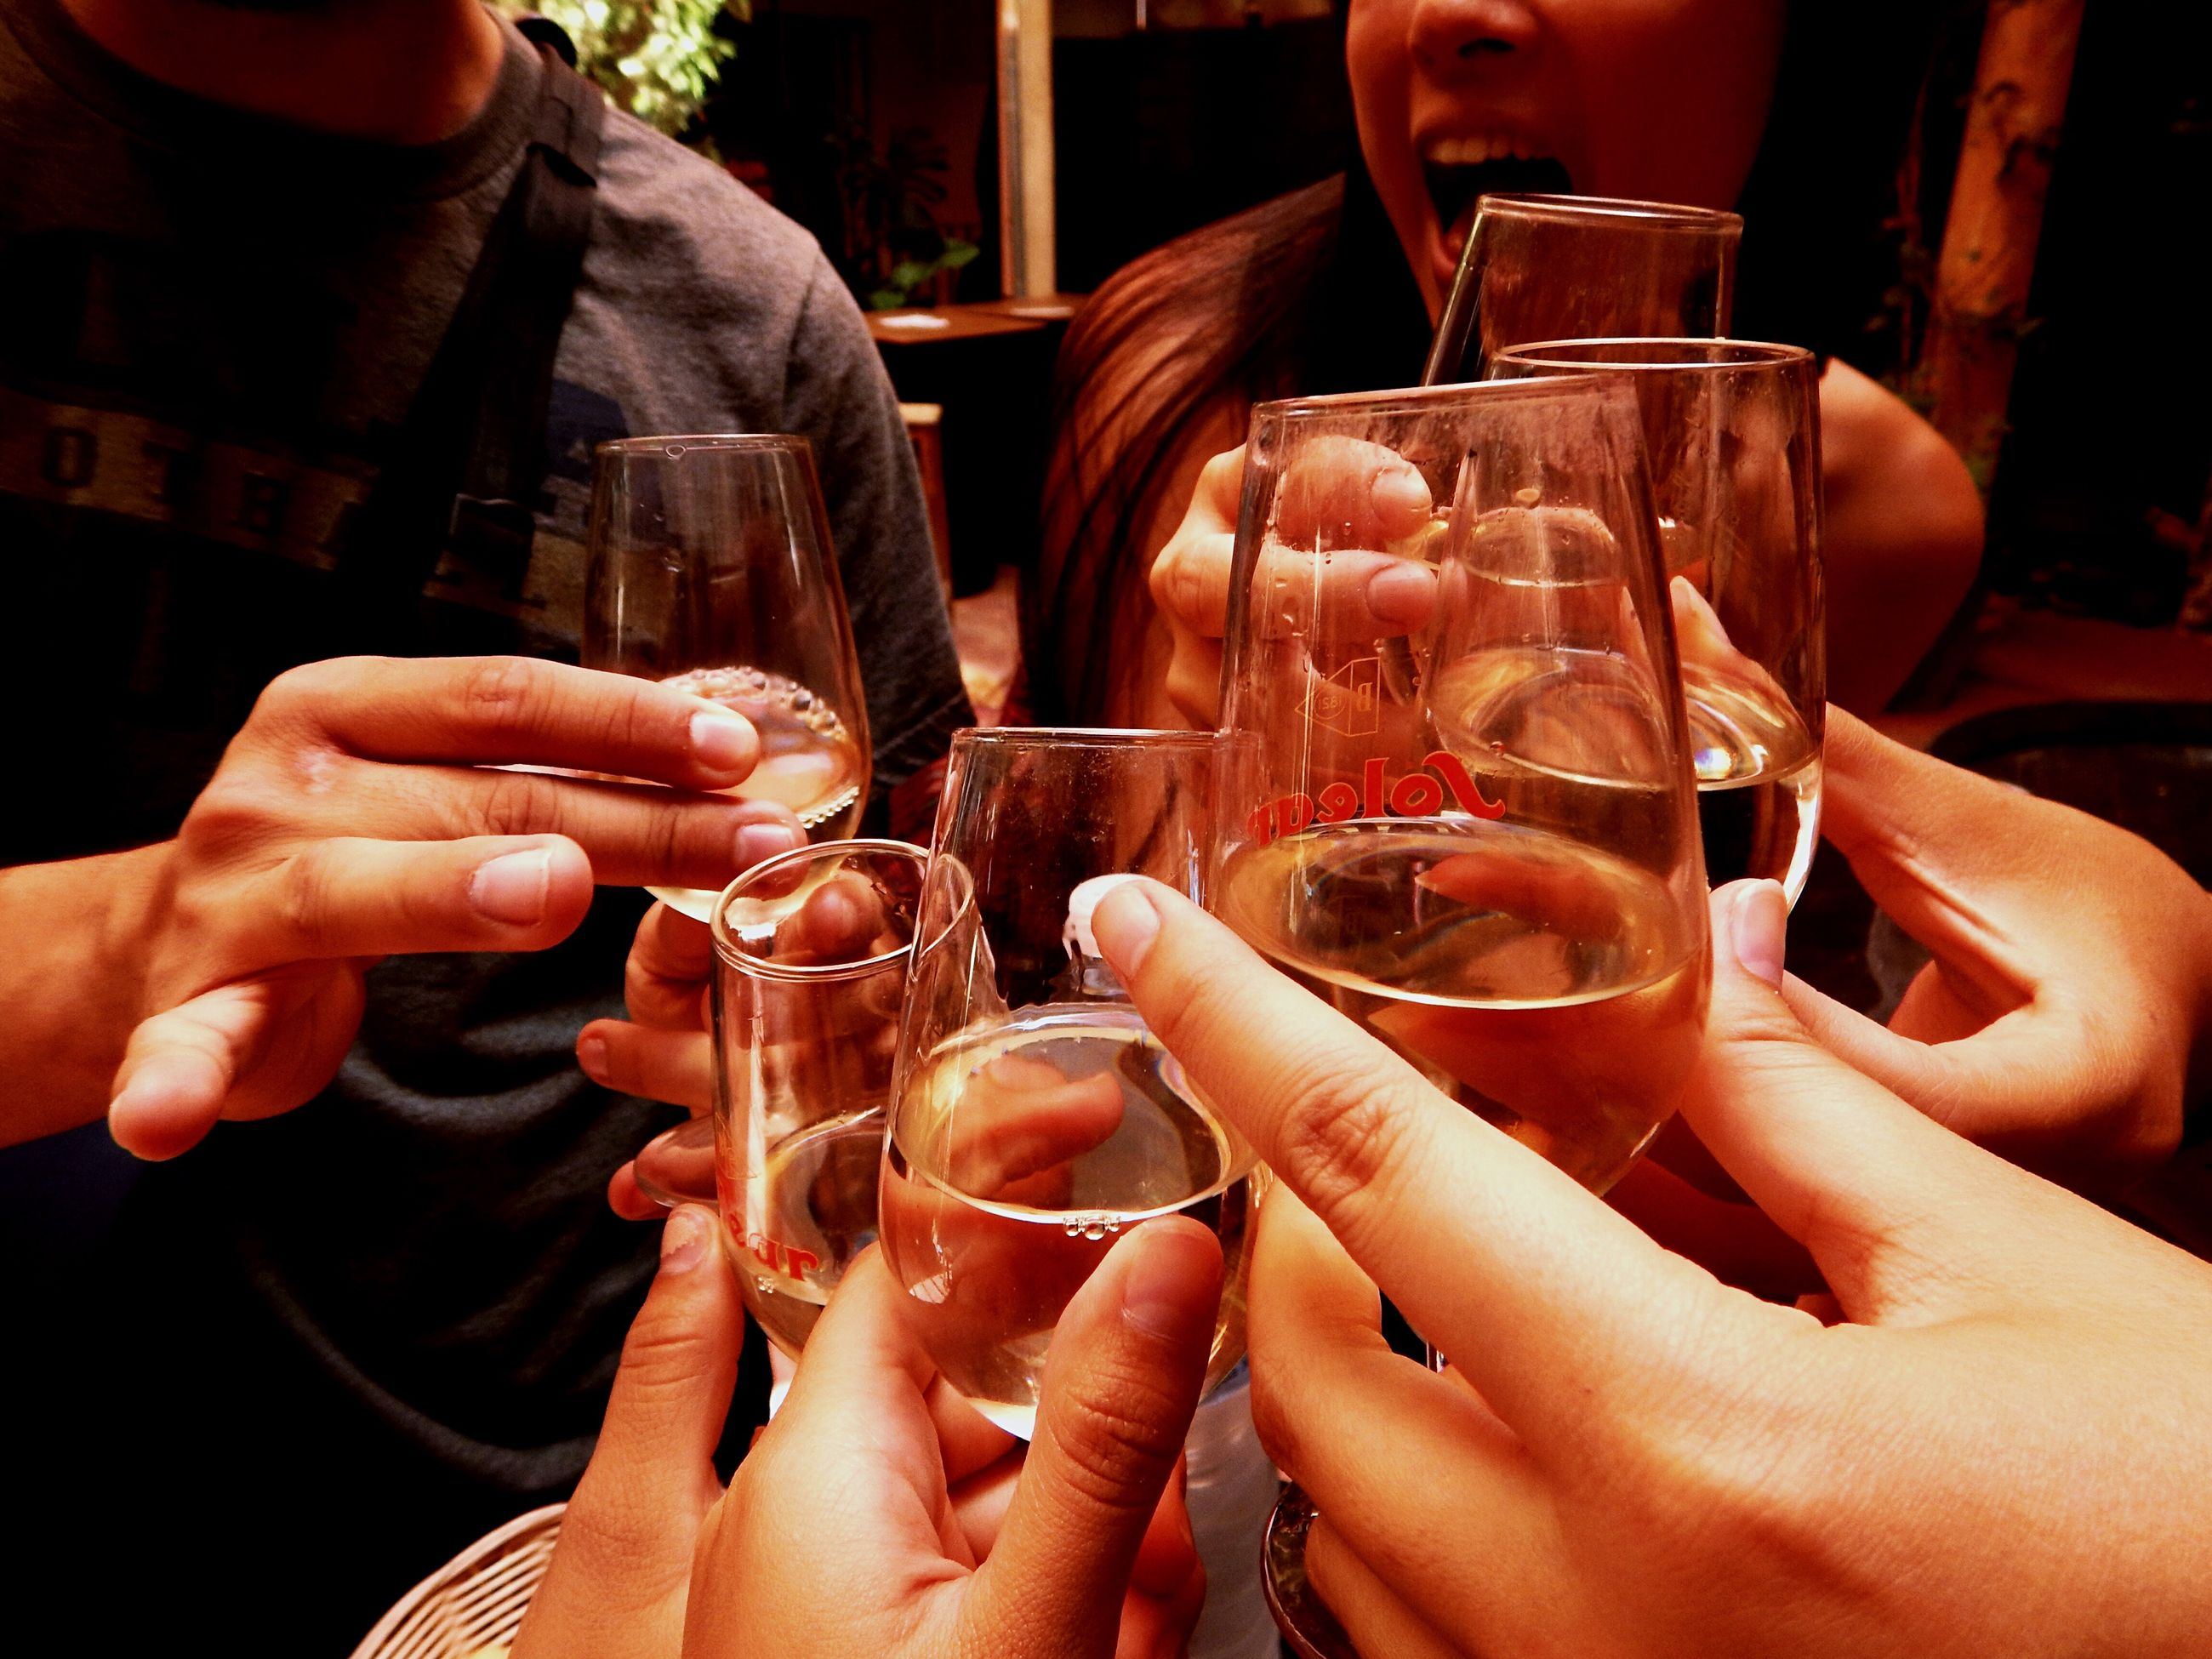 drink, food and drink, holding, alcohol, celebration, person, refreshment, wineglass, leisure activity, friendship, men, lifestyles, champagne, tradition, togetherness, close-up, restaurant, freshness, party - social event, in a row, nightclub, bar - drink establishment, nightlife